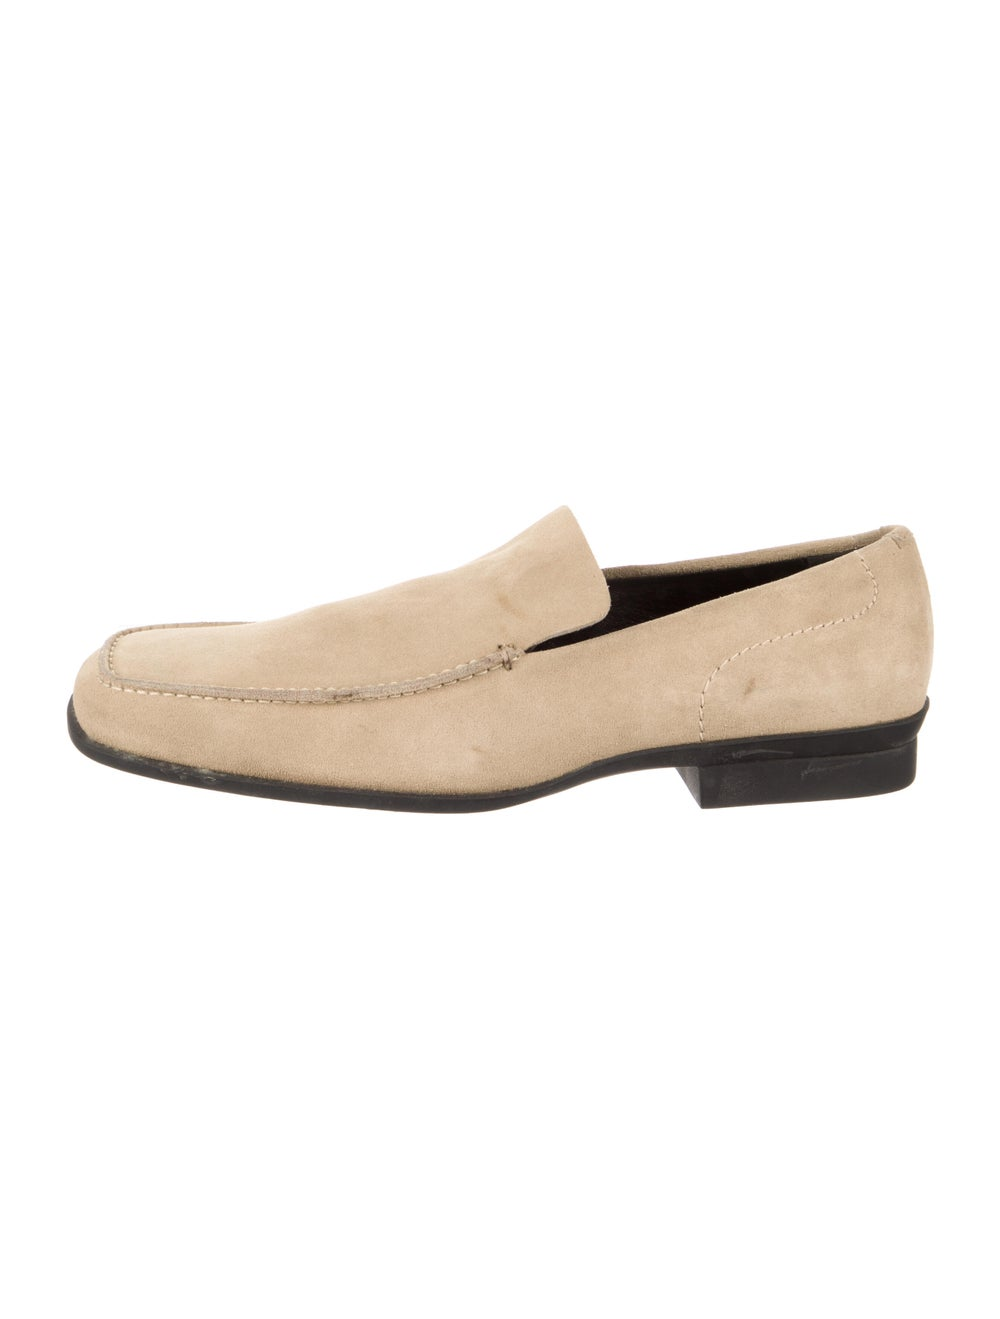 Gucci Suede Loafers - image 1